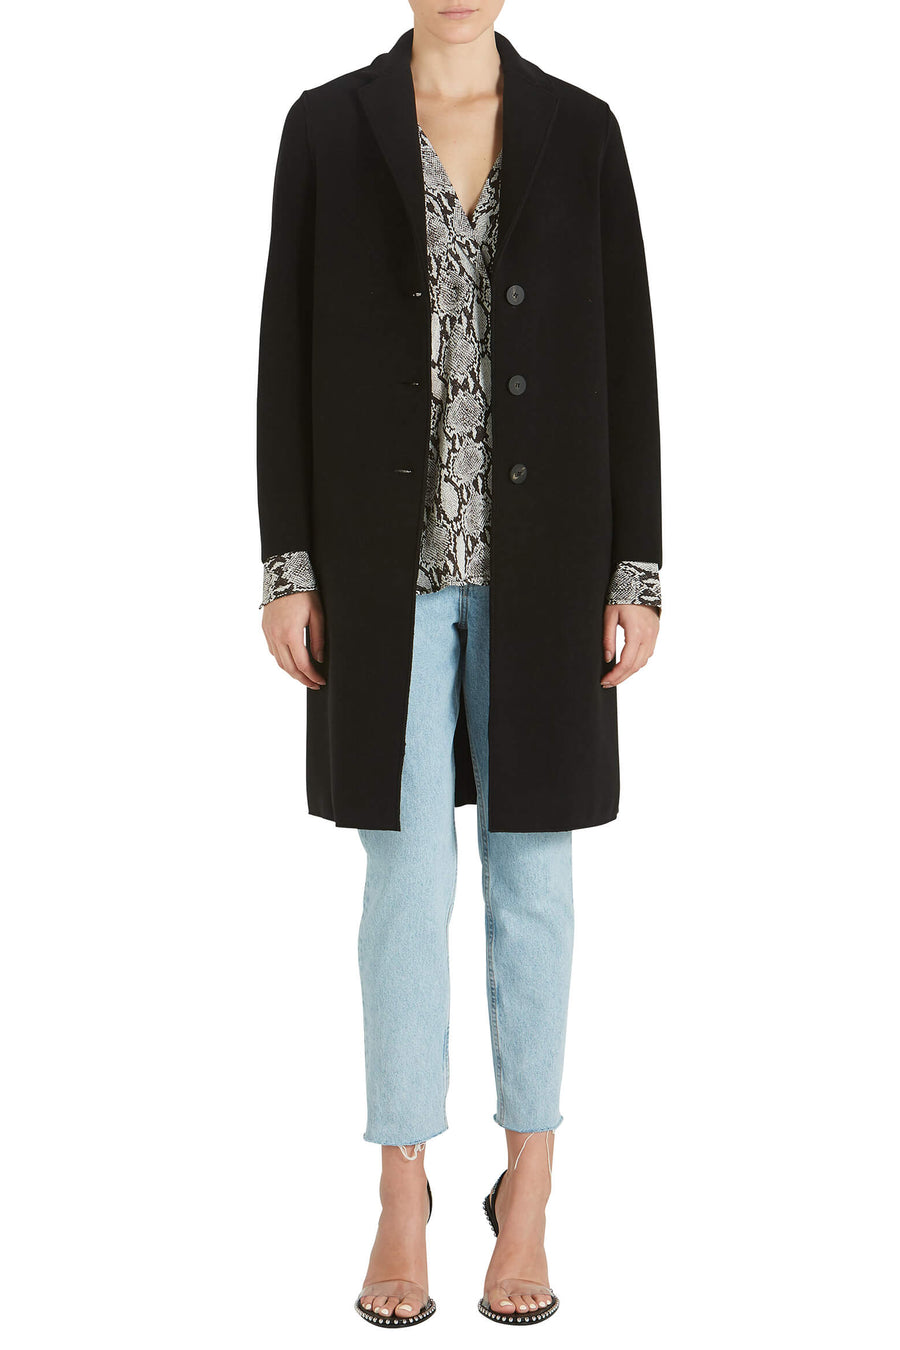 Harris Wharf London Woman Overcoat Polaire from The New Trend Cropped